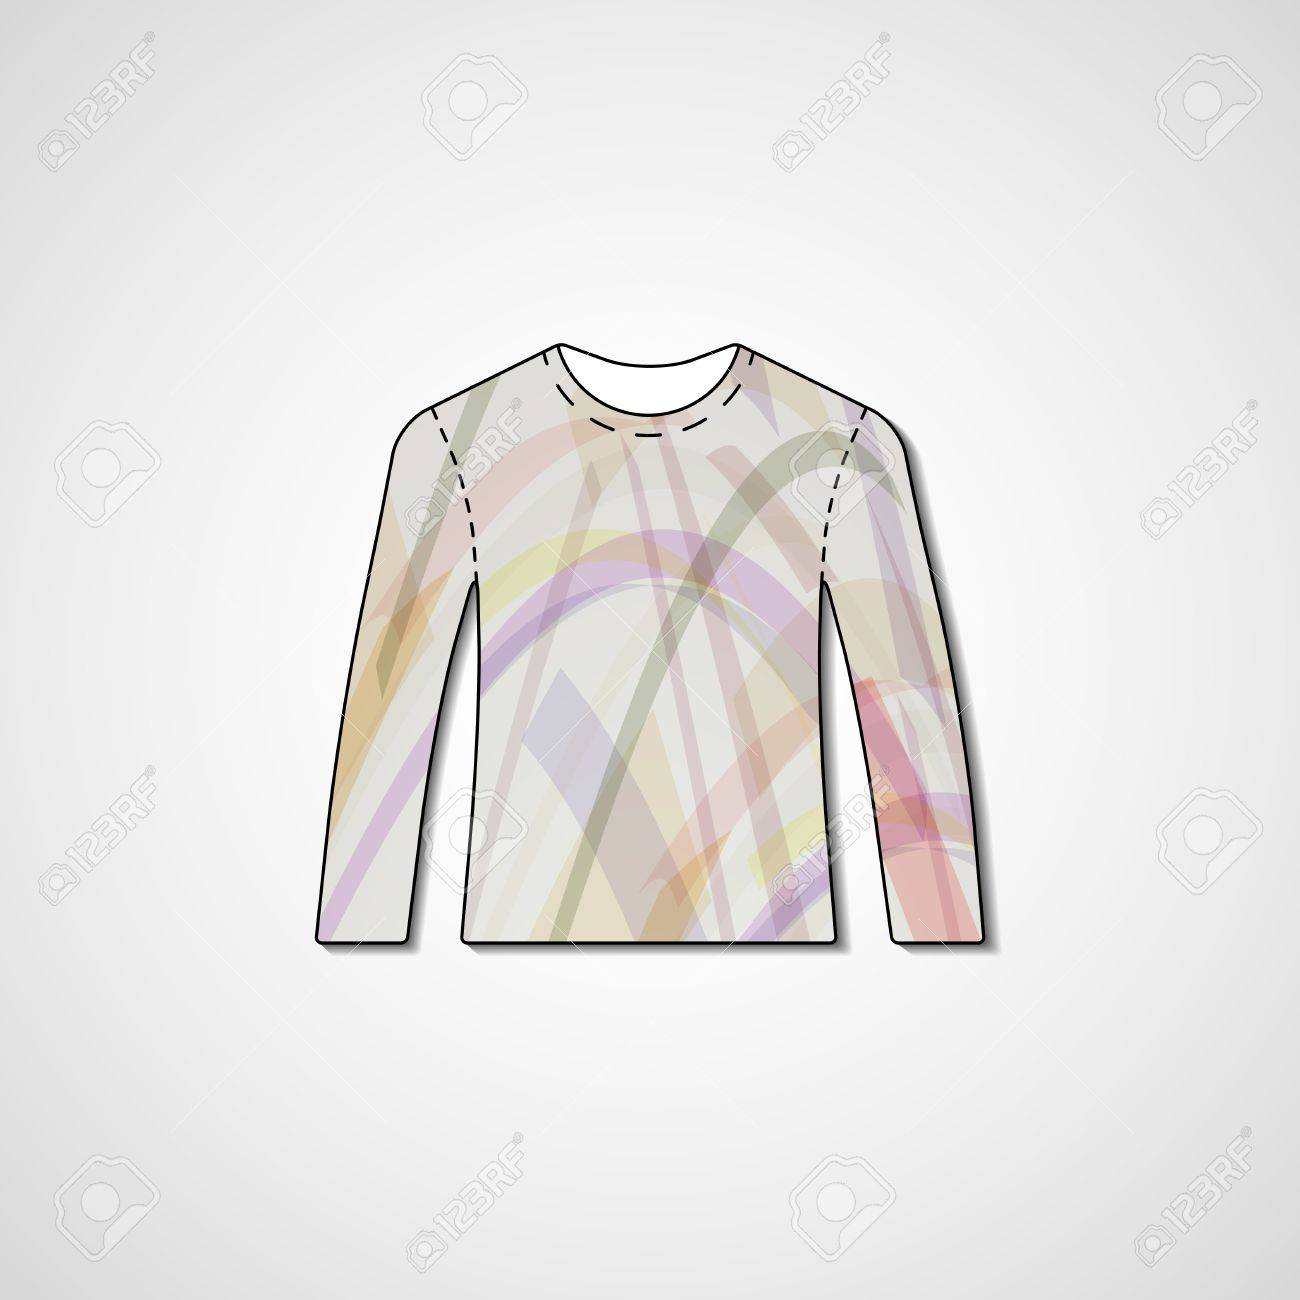 073bd9b5a Abstract Illustration On Sweater